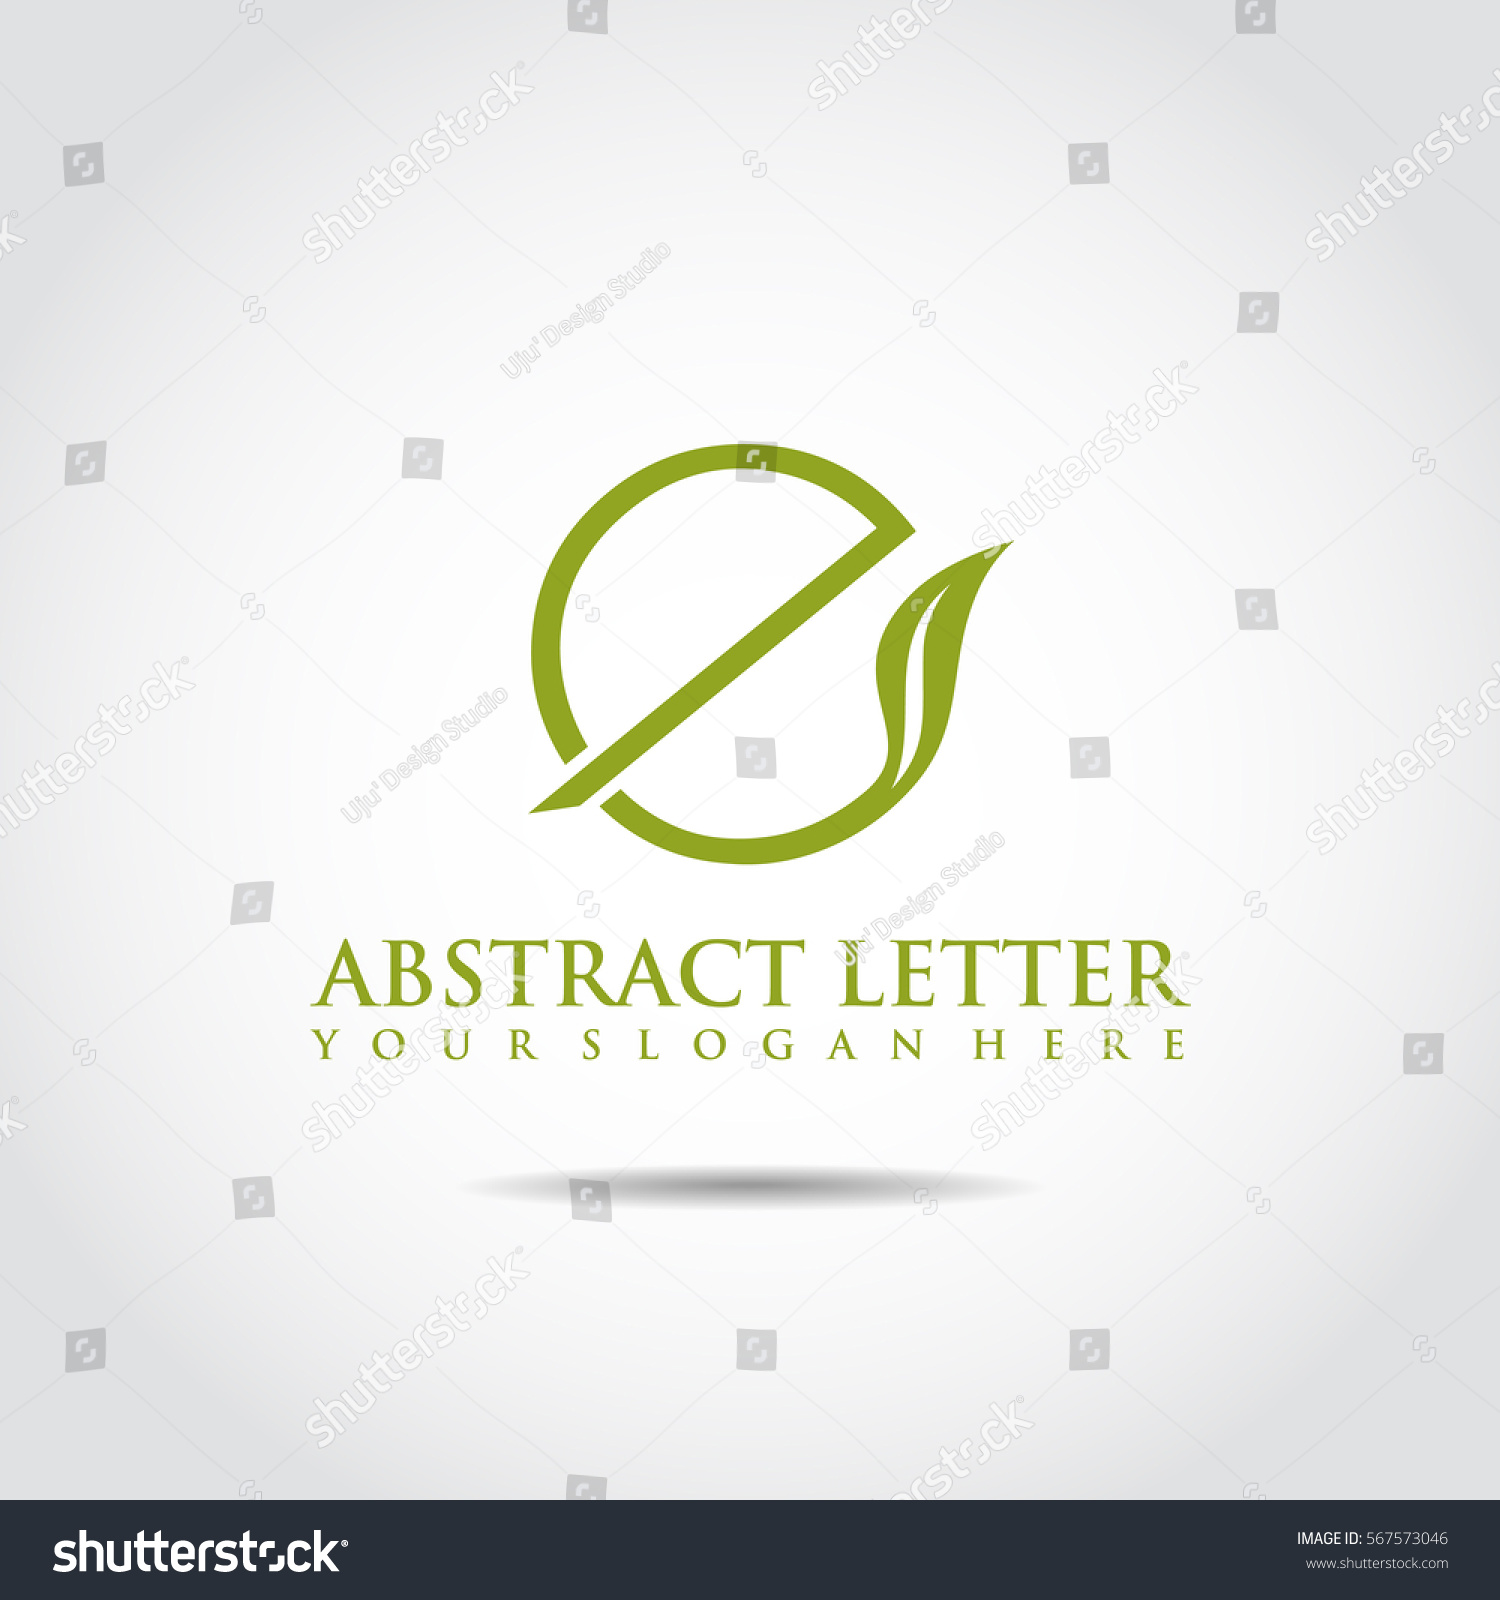 Abstract Letter E Logo Template Vector Vector de stock567573046 ...